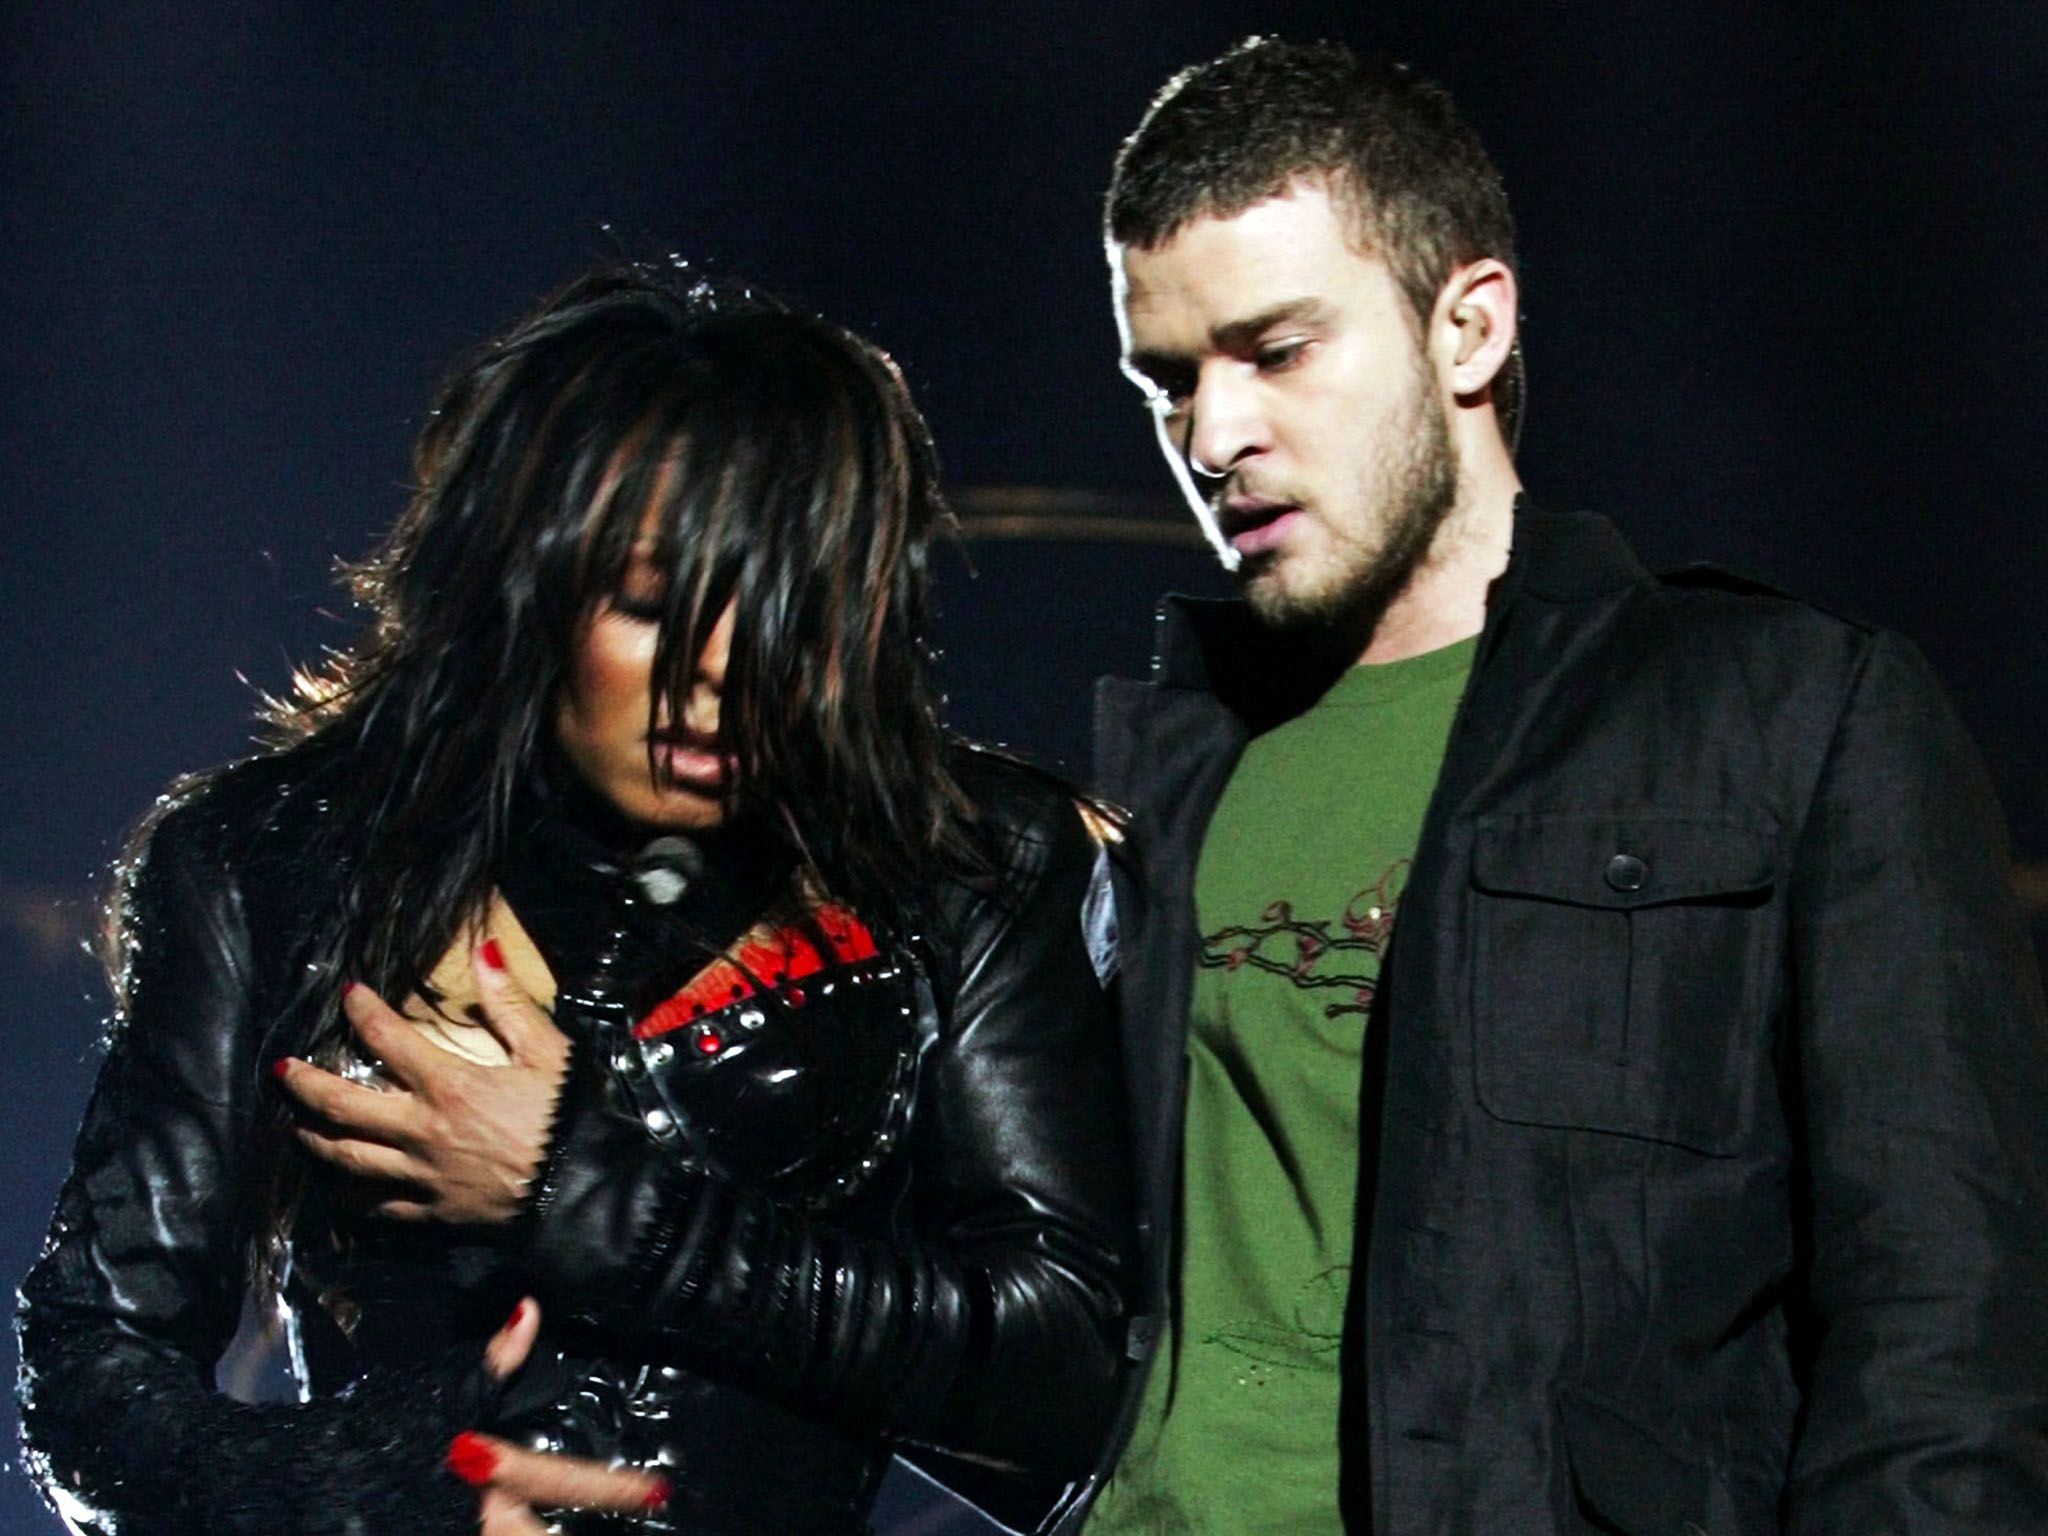 Houston, Texas - Janet Jackson (L) reacts after fellow singer Justin Timberlake ripped off one... [Photo of the day - August 2015]